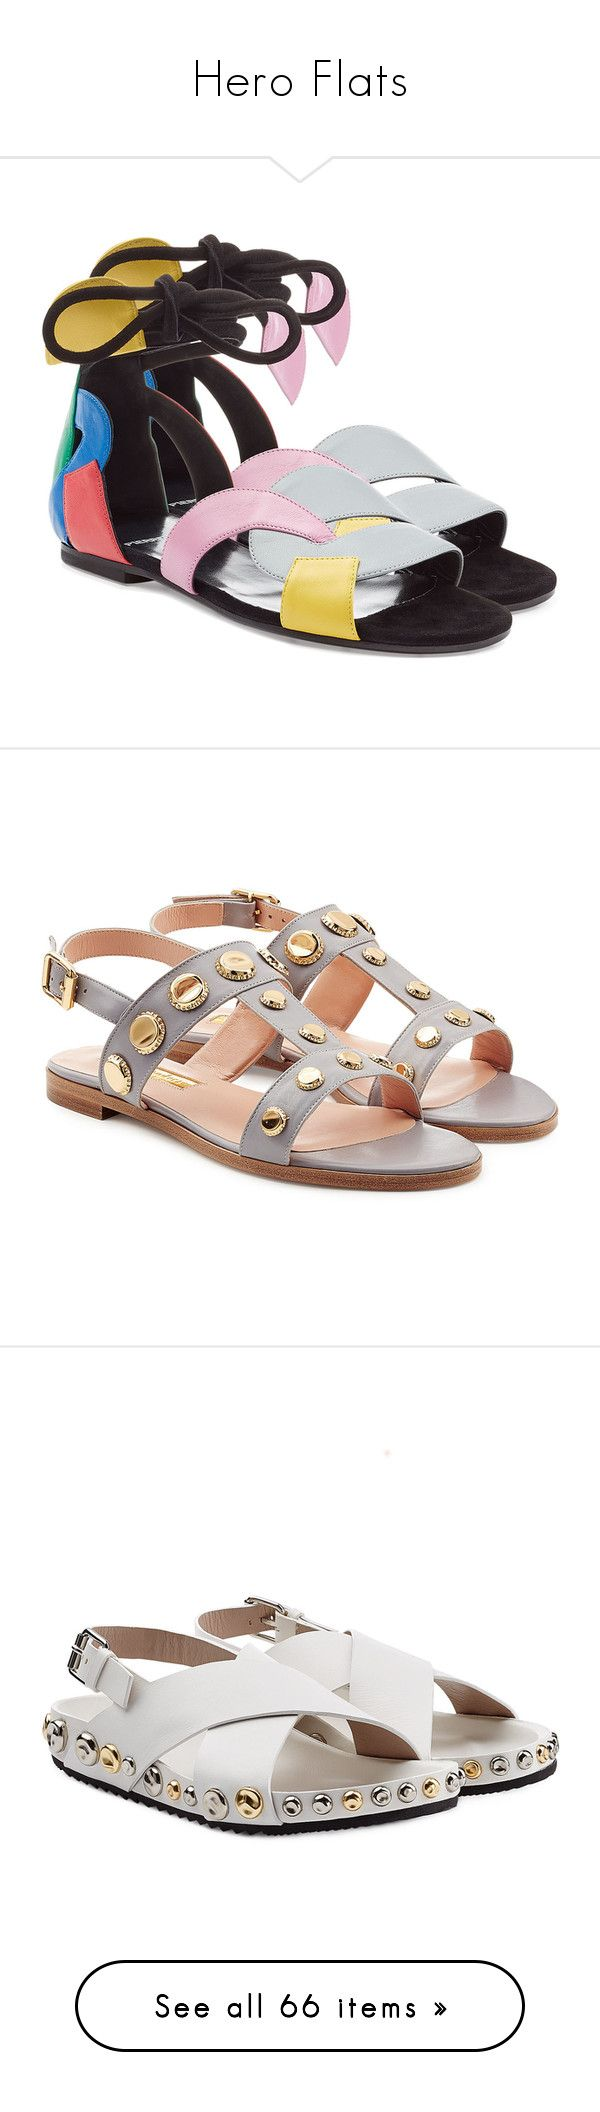 """""""Hero Flats"""" by stylebop ❤ liked on Polyvore featuring shoes, sandals, multicolor, block-heel sandals, ankle strap shoes, multi color sandals, tie sandals, ankle strap sandals, mauve and leather shoes"""